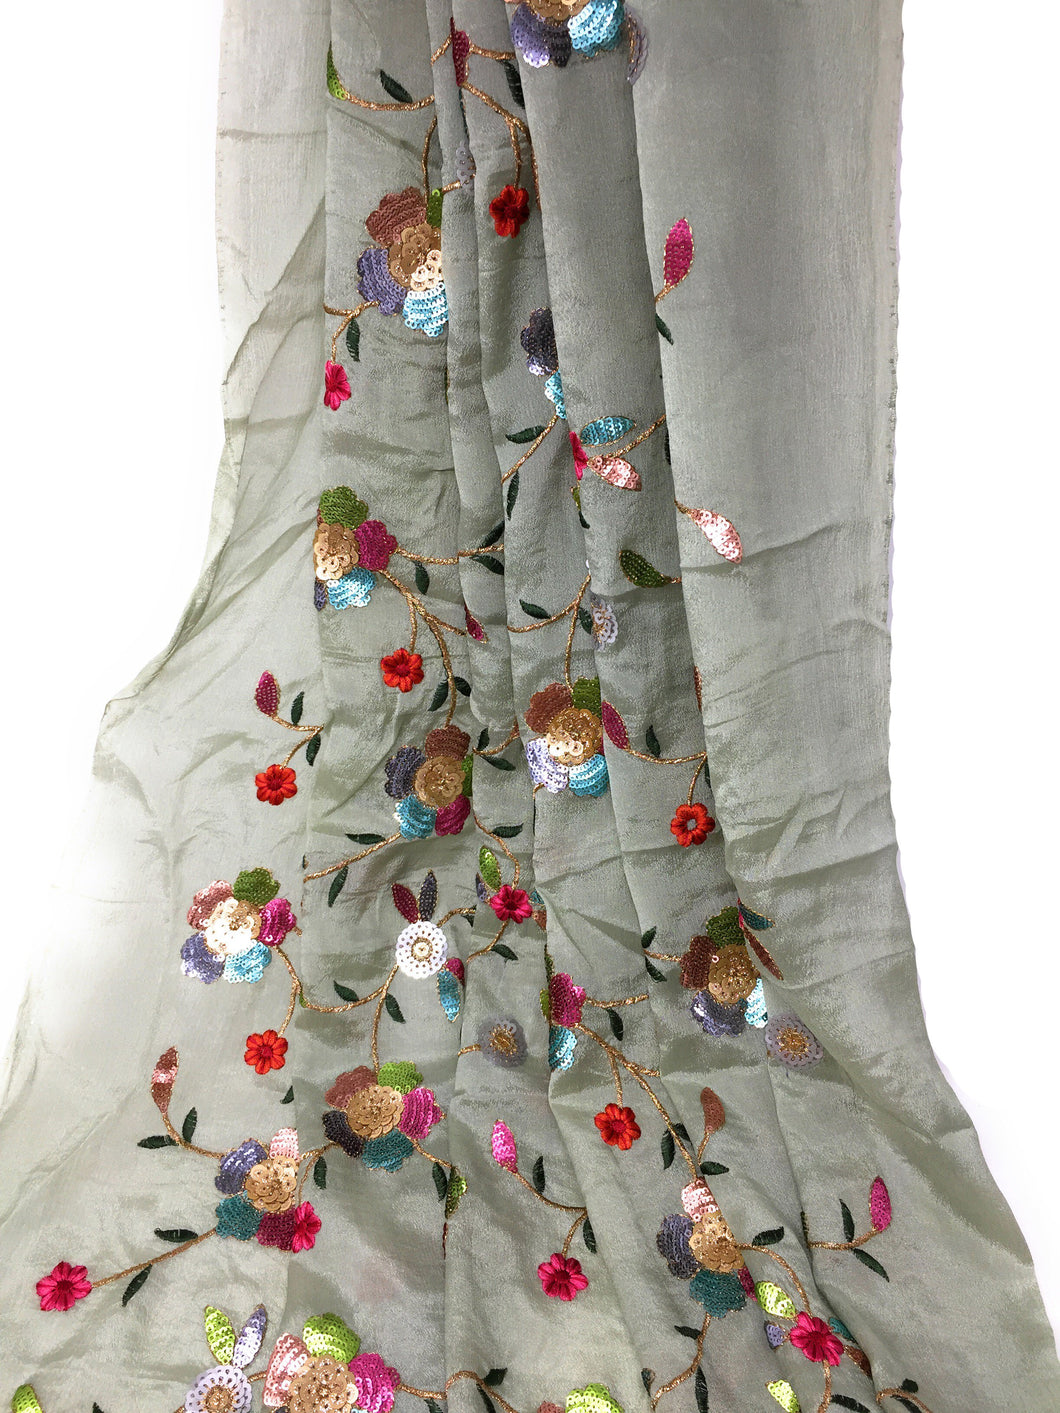 Multicolour Sequins Floral Embroidery On Green Silk Chiffon Fabric